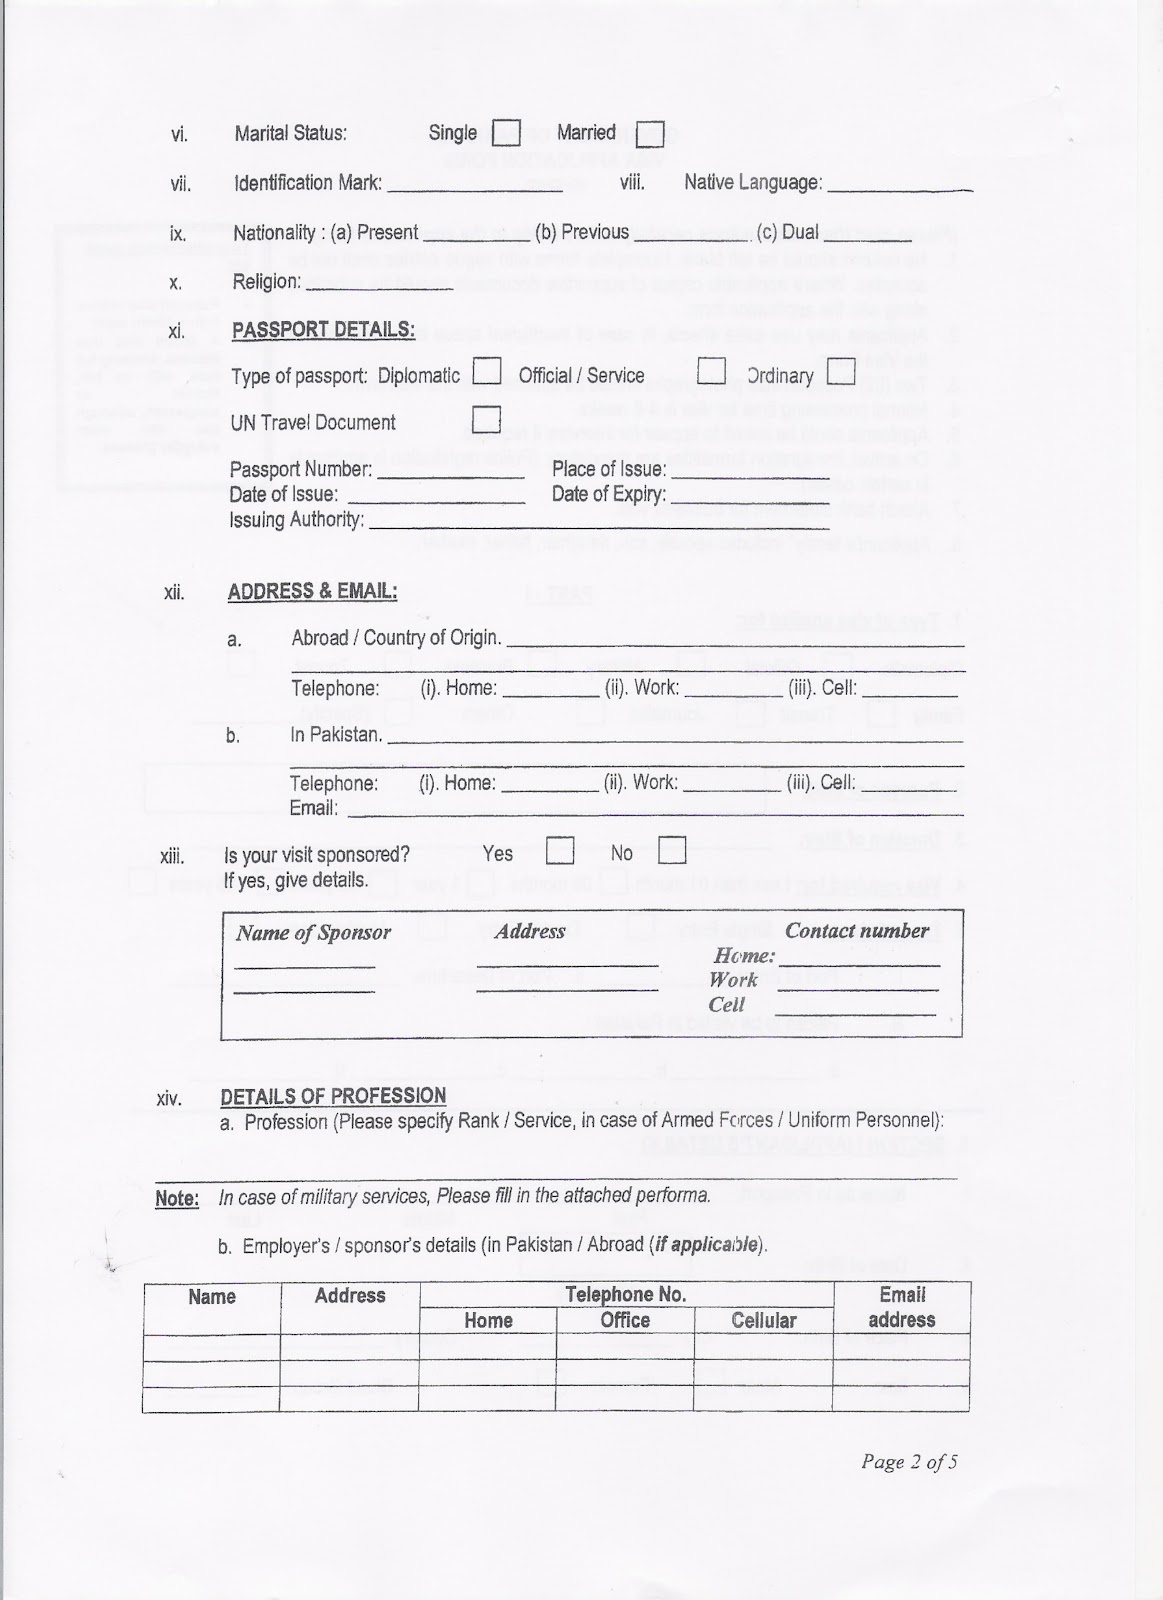 Pakistan High Commission, Singapore: VISA Requirements and Forms